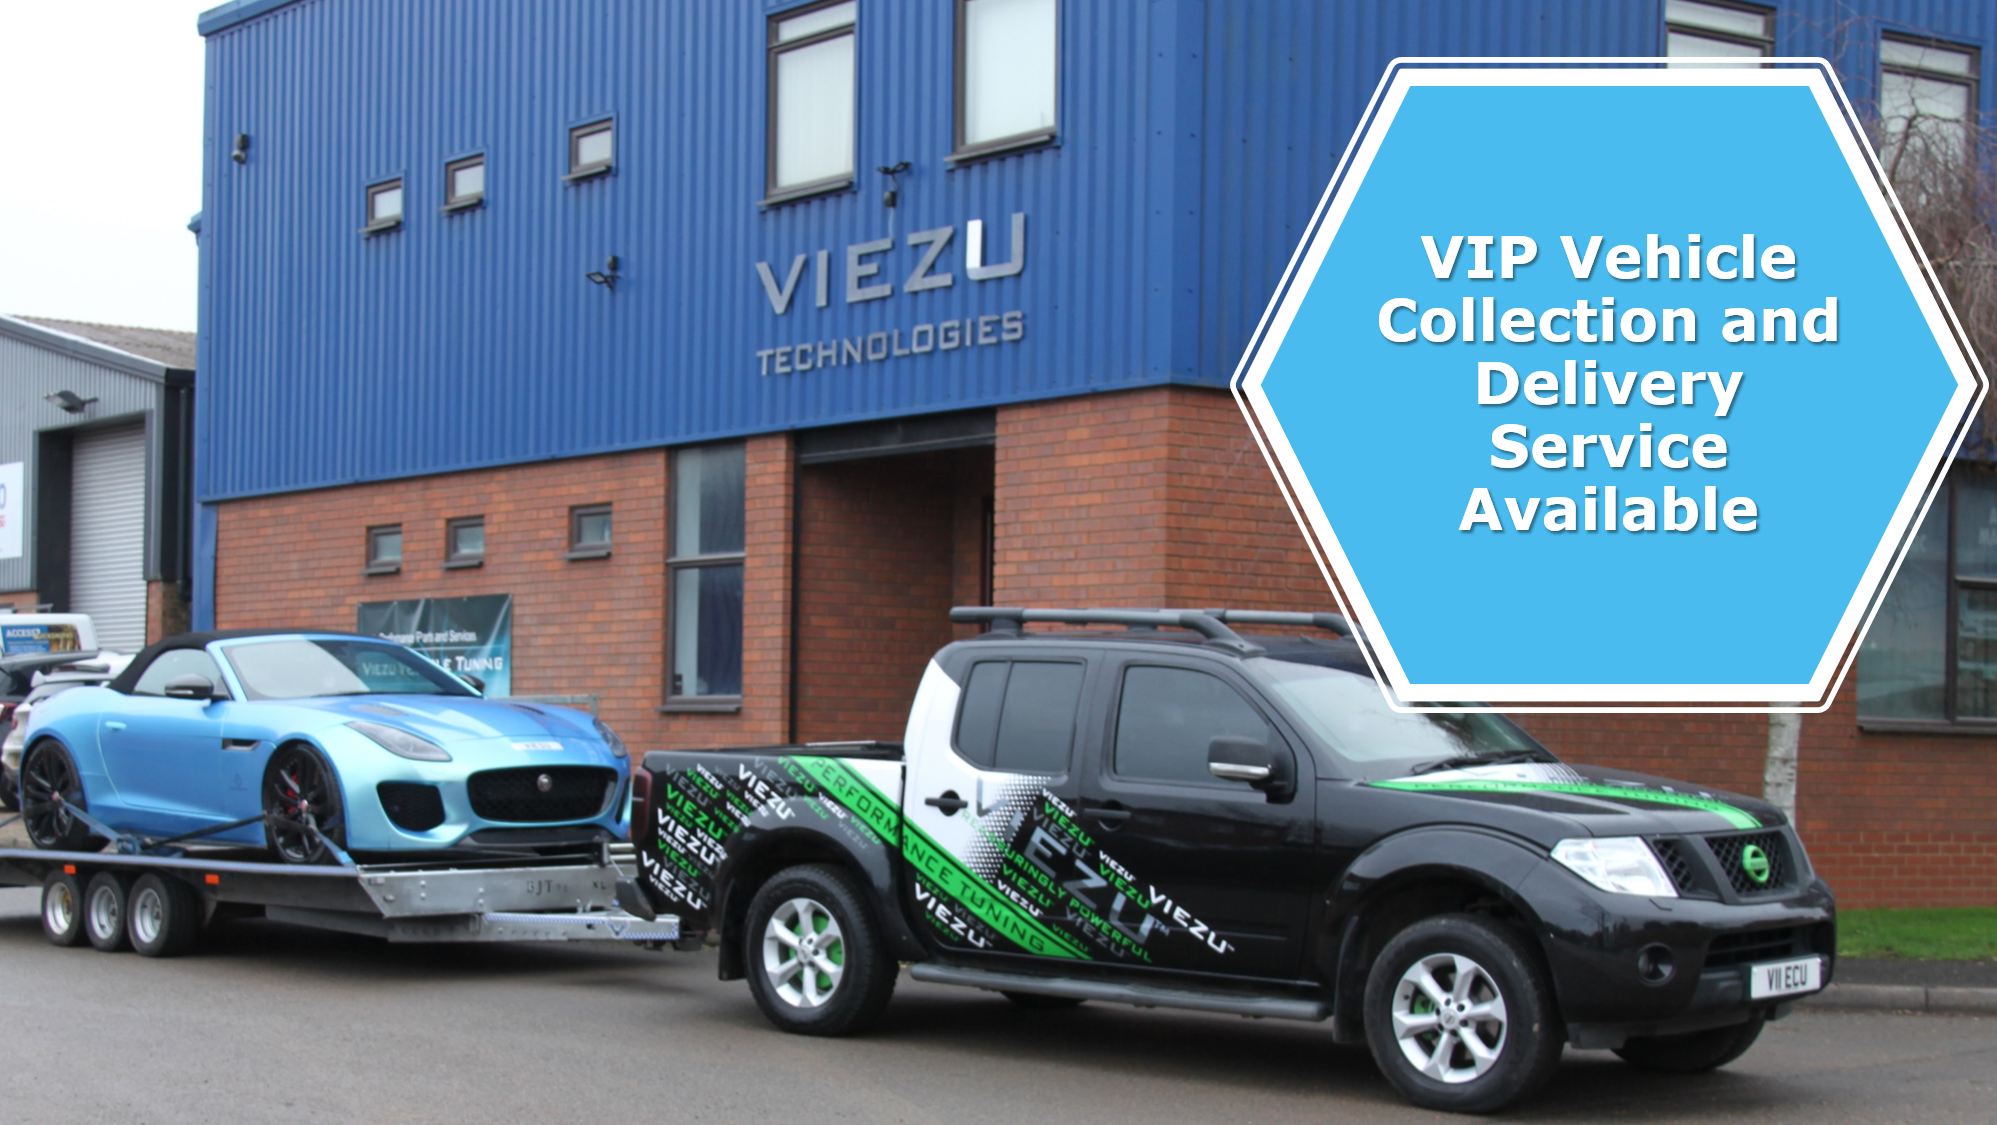 vip vehicle collection and delivery service warwickshire